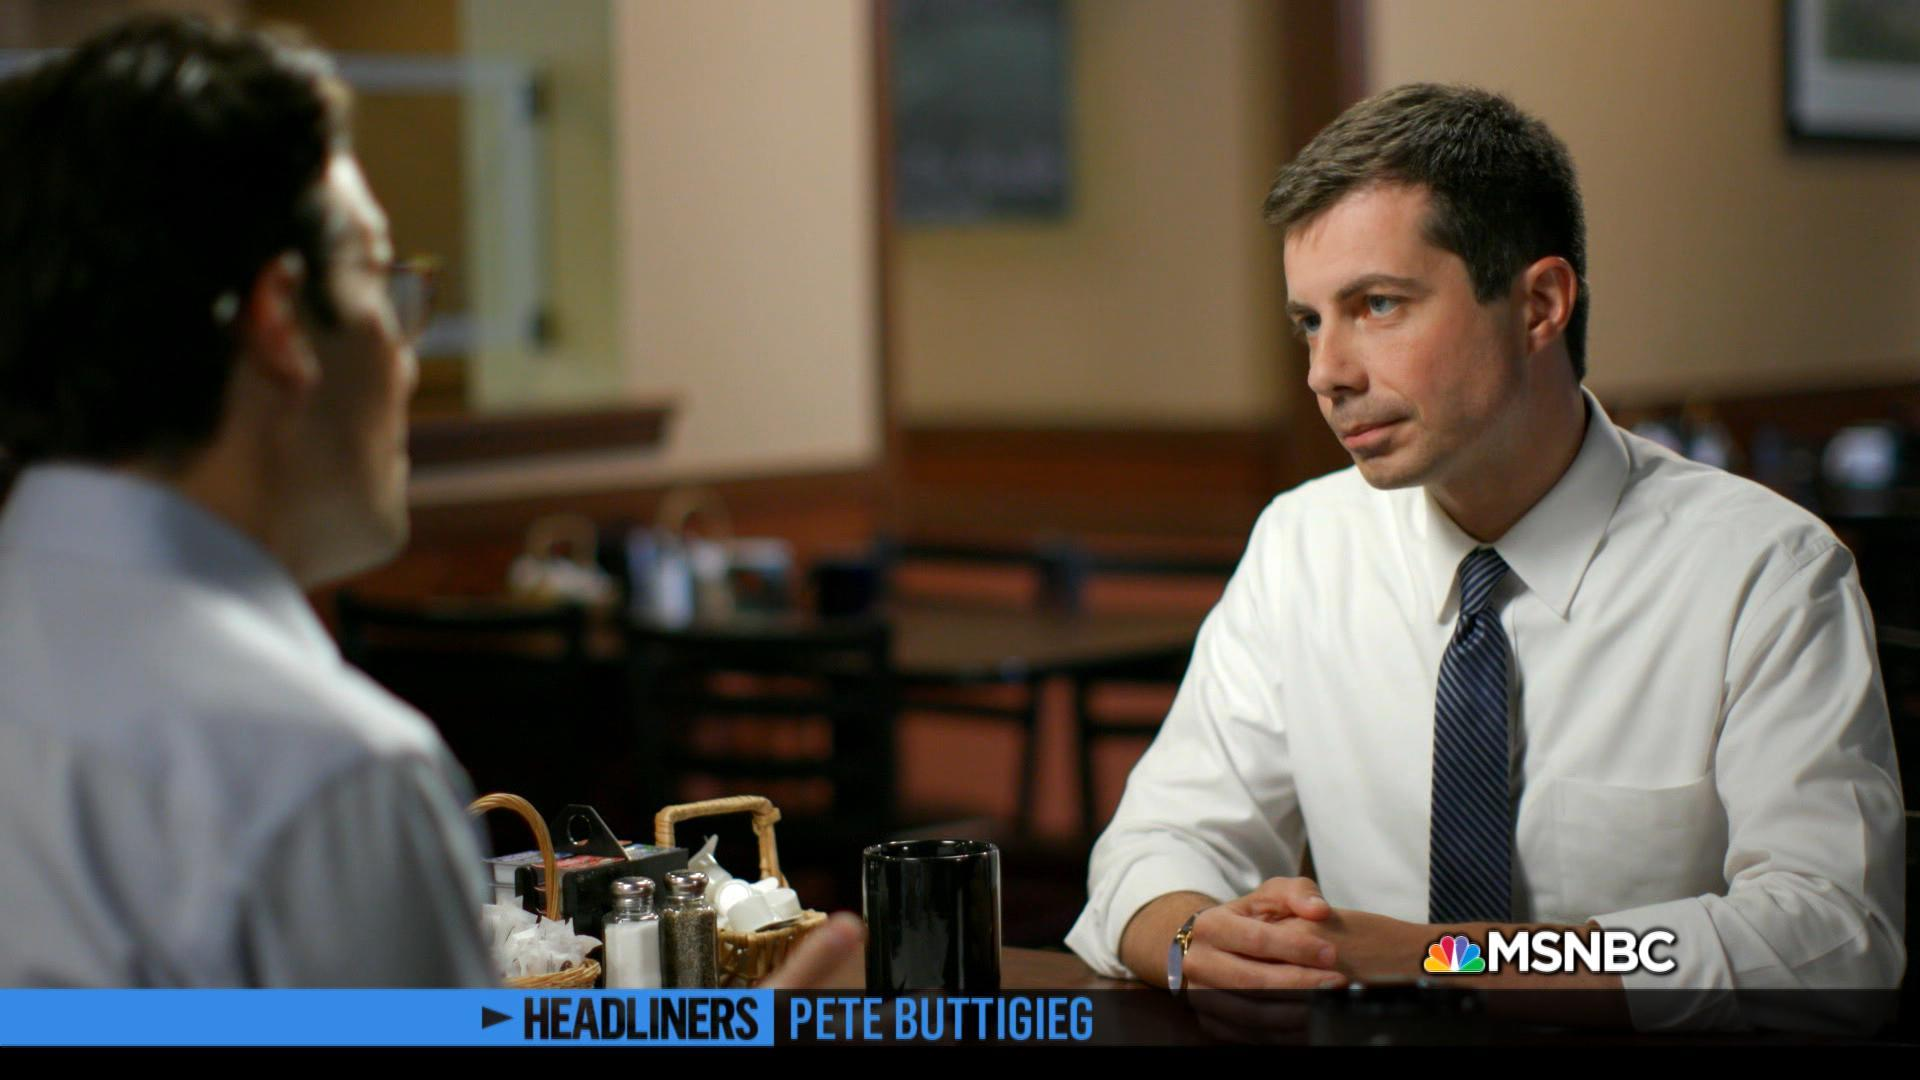 'Headliners: Pete Buttigieg' Working with Vice President Pence